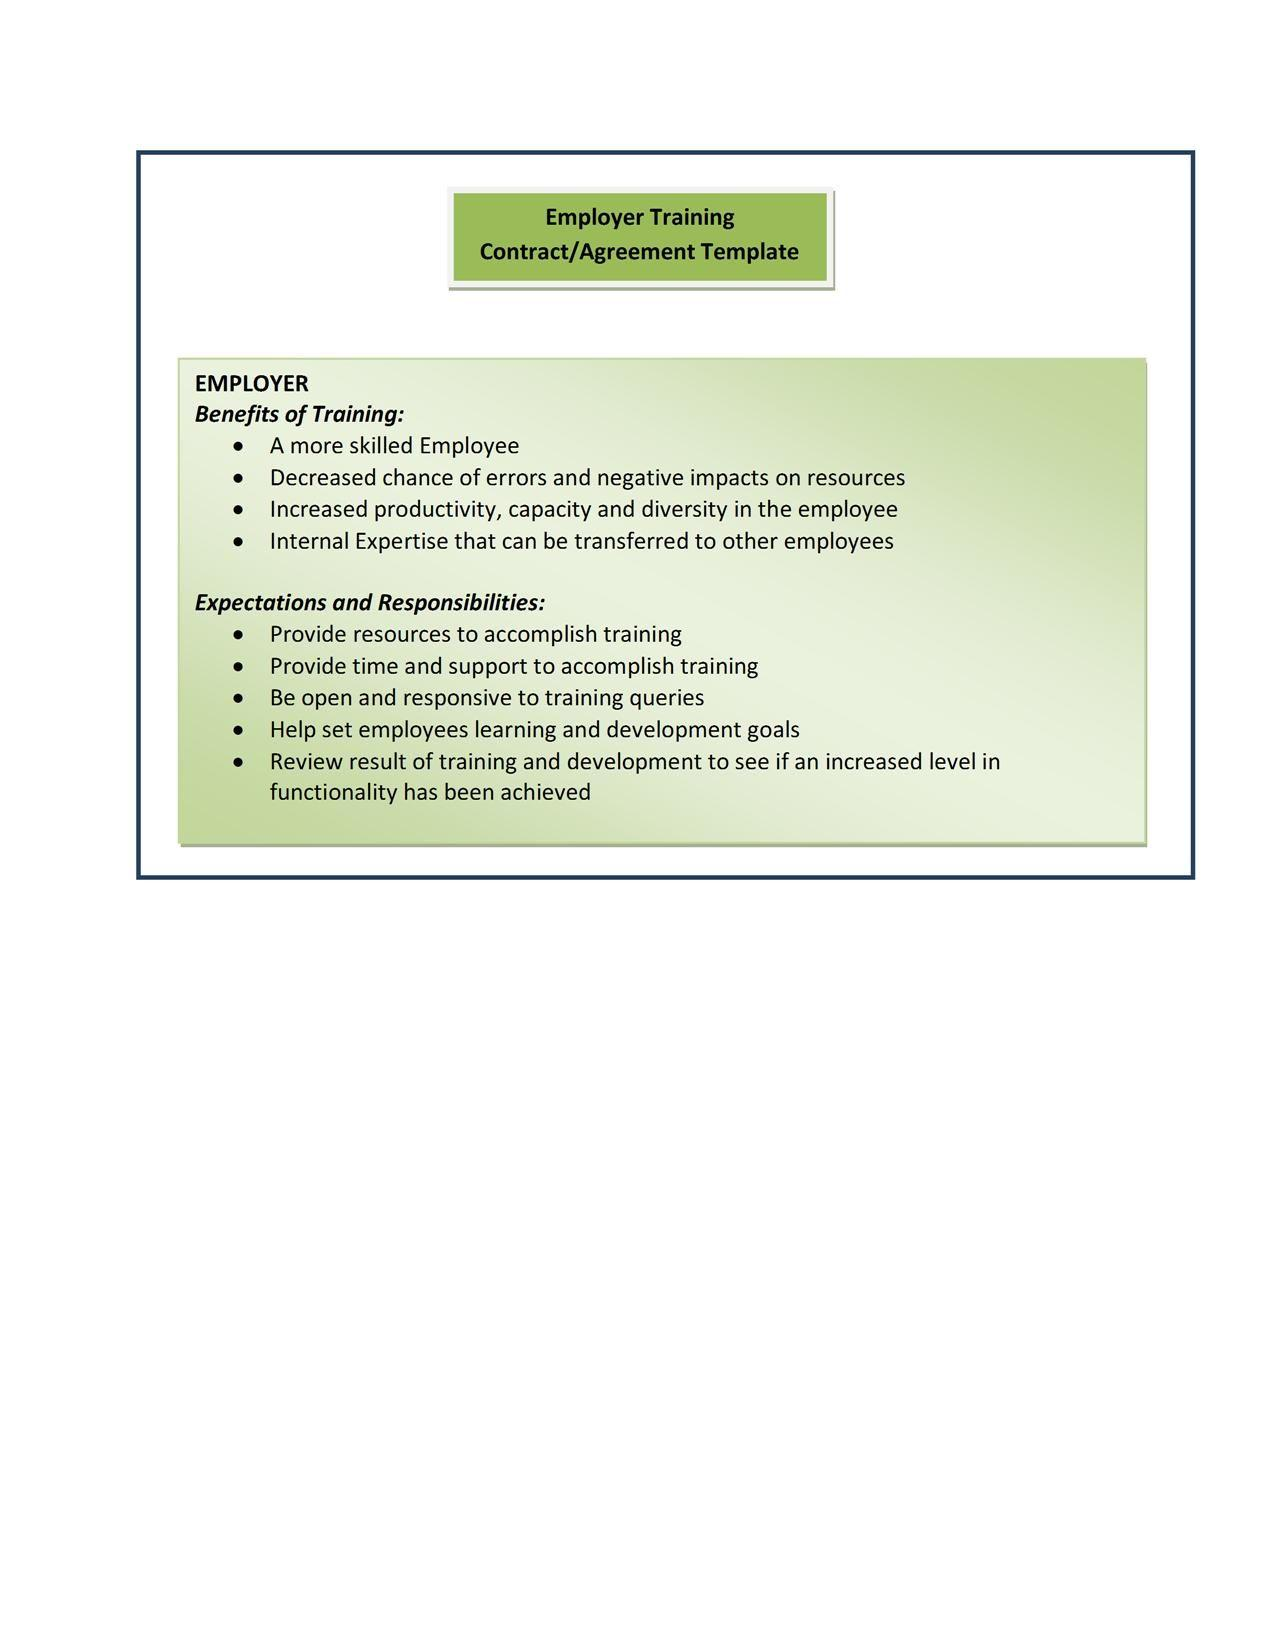 Employer Training Contract Template